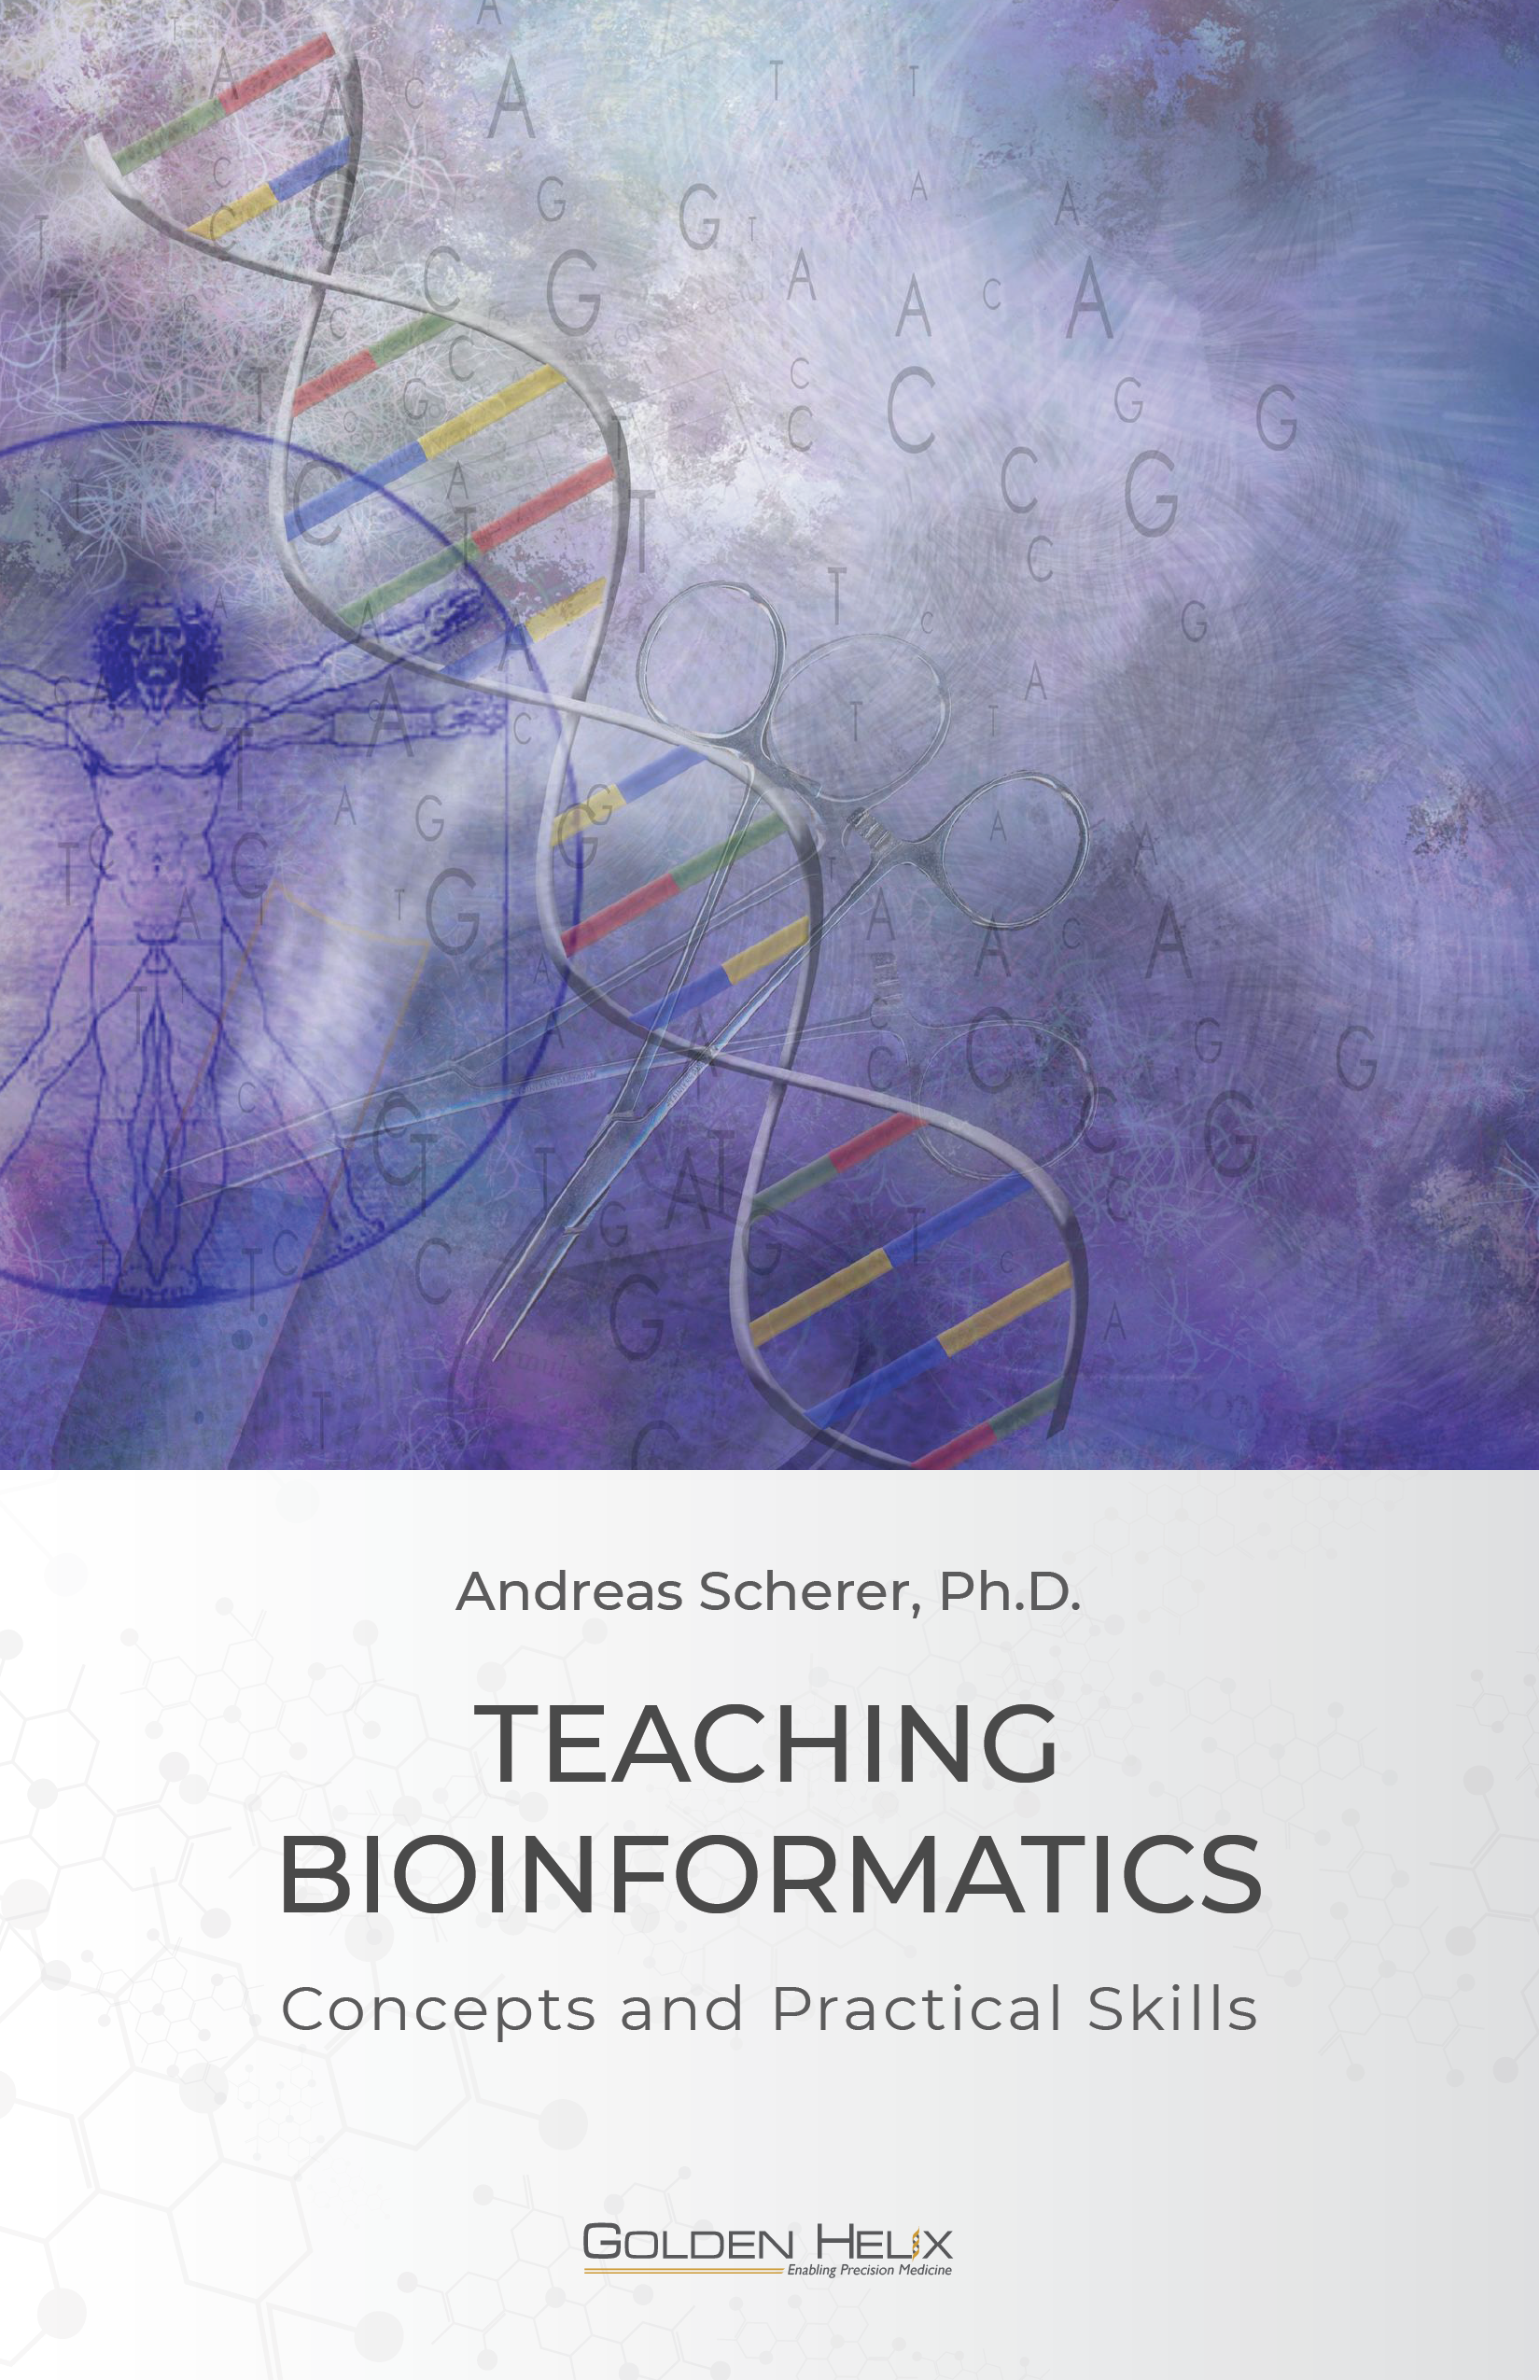 Teaching Bioinformatics Concepts & Practical Skills